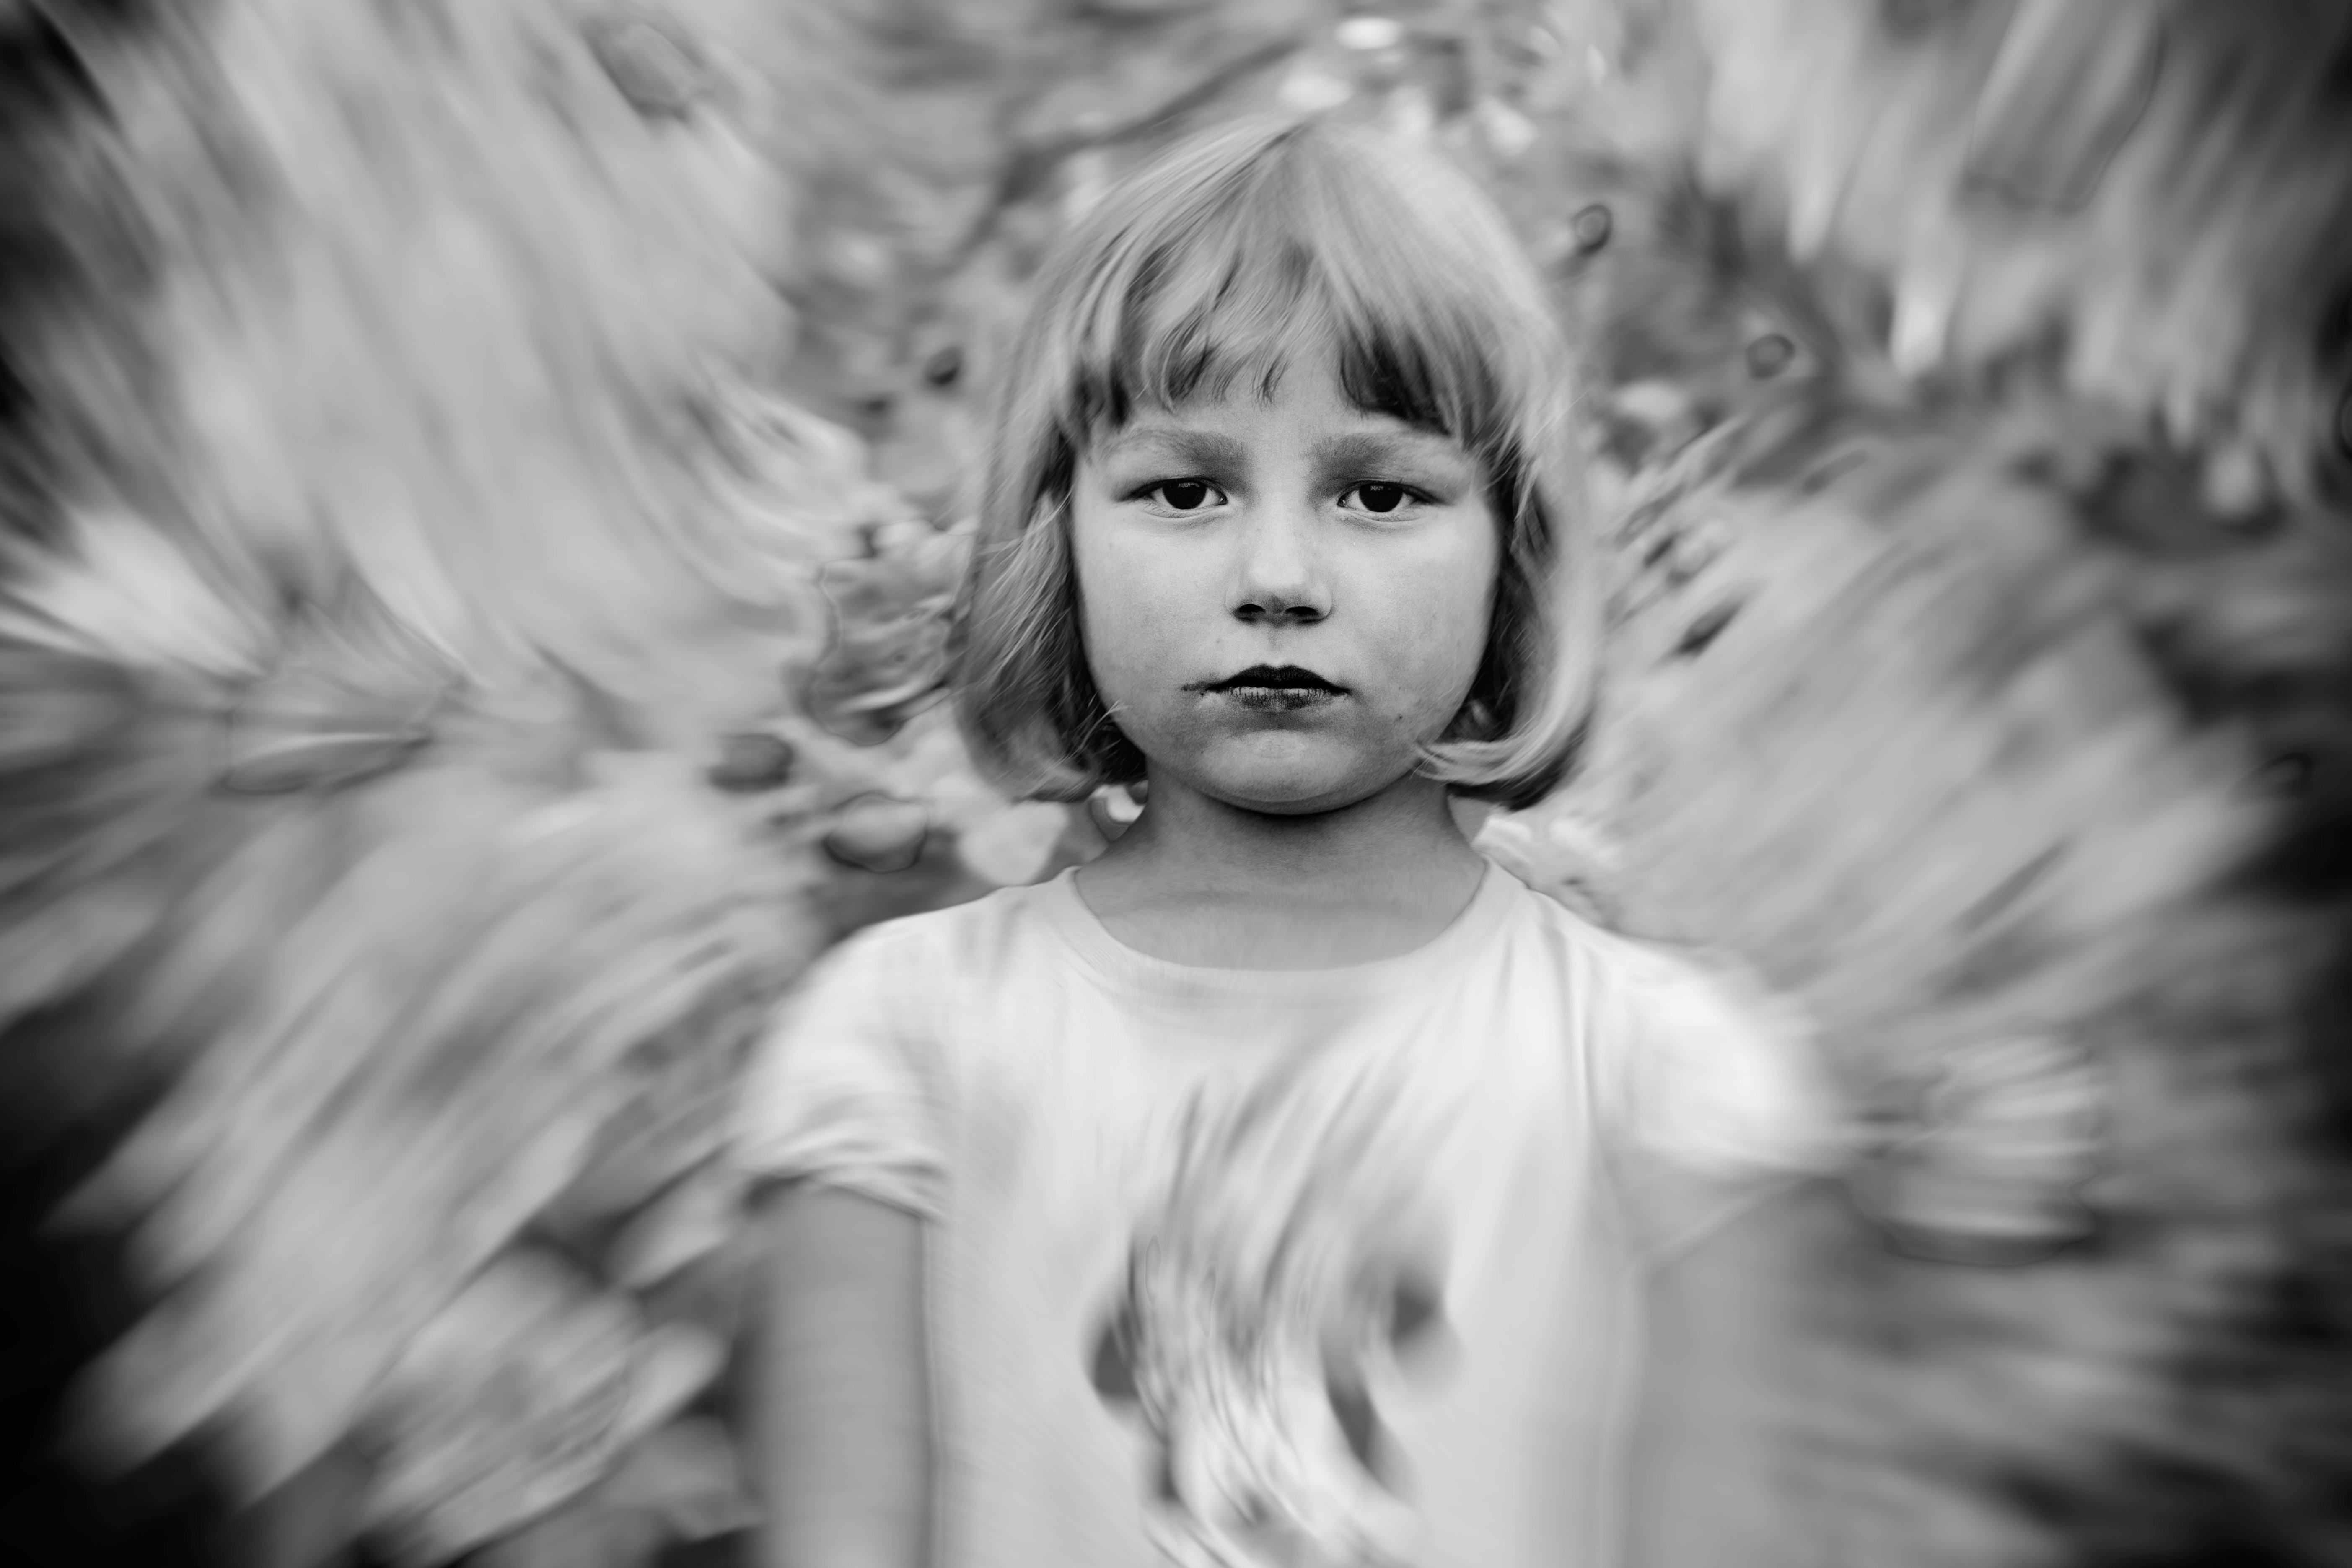 Tomislav Stajduhar; swirl girl, 2017, Original Photography Black and White, 45 x 30 cm. Artwork description: 241 Portrait of a young girl caught in a visual swirl. ...